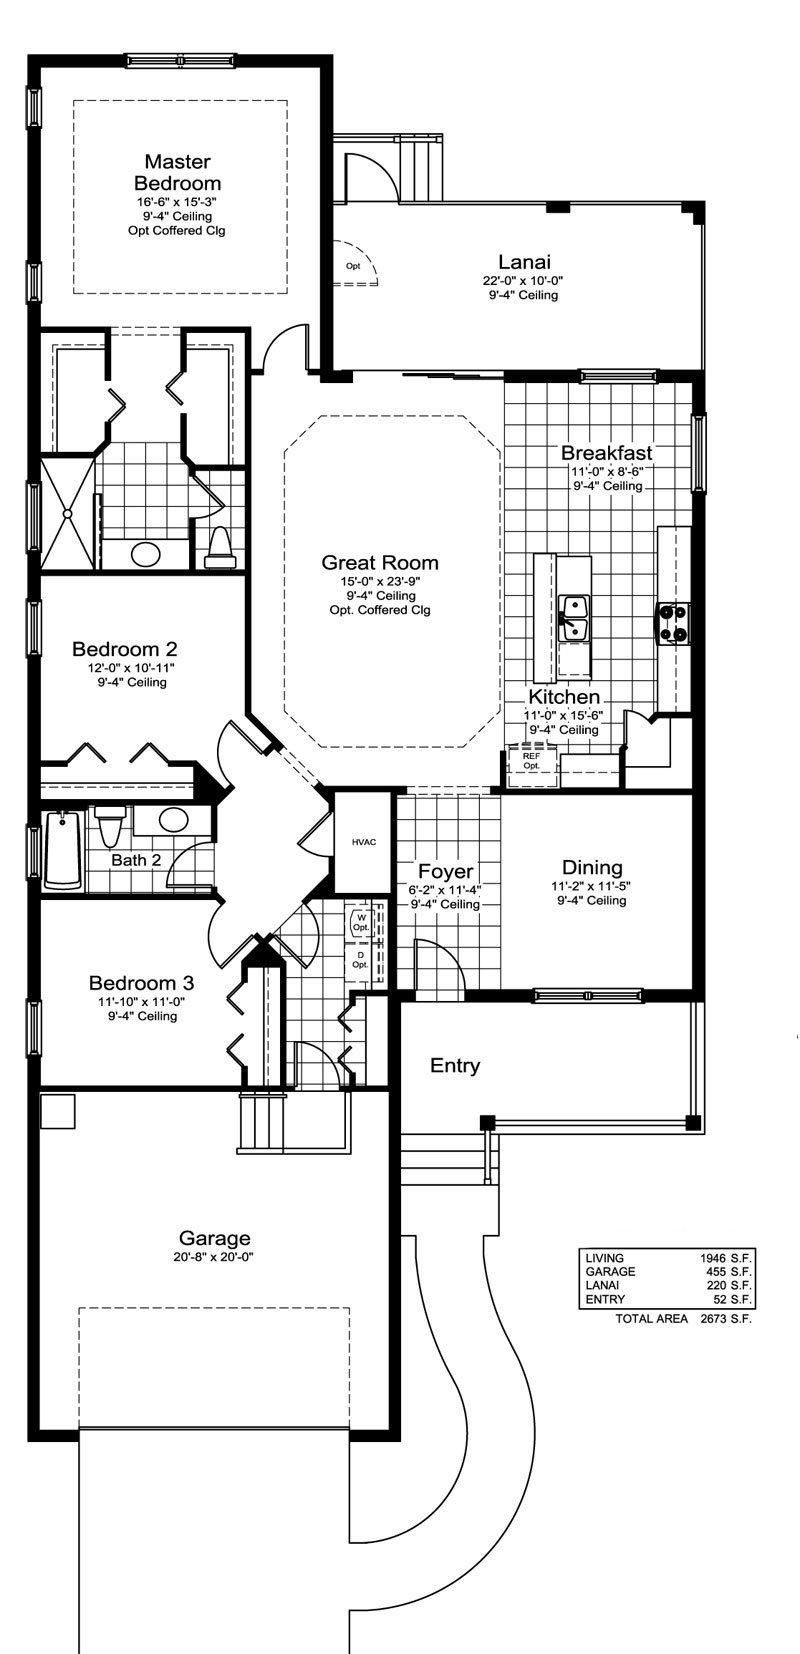 White Sand Floor Plan in Coastal Key, Fort Myers by Neal Communities, 3 Bedrooms, 2 Bathrooms, 2 Car garage, 1,946 Square feet, 1 Story home